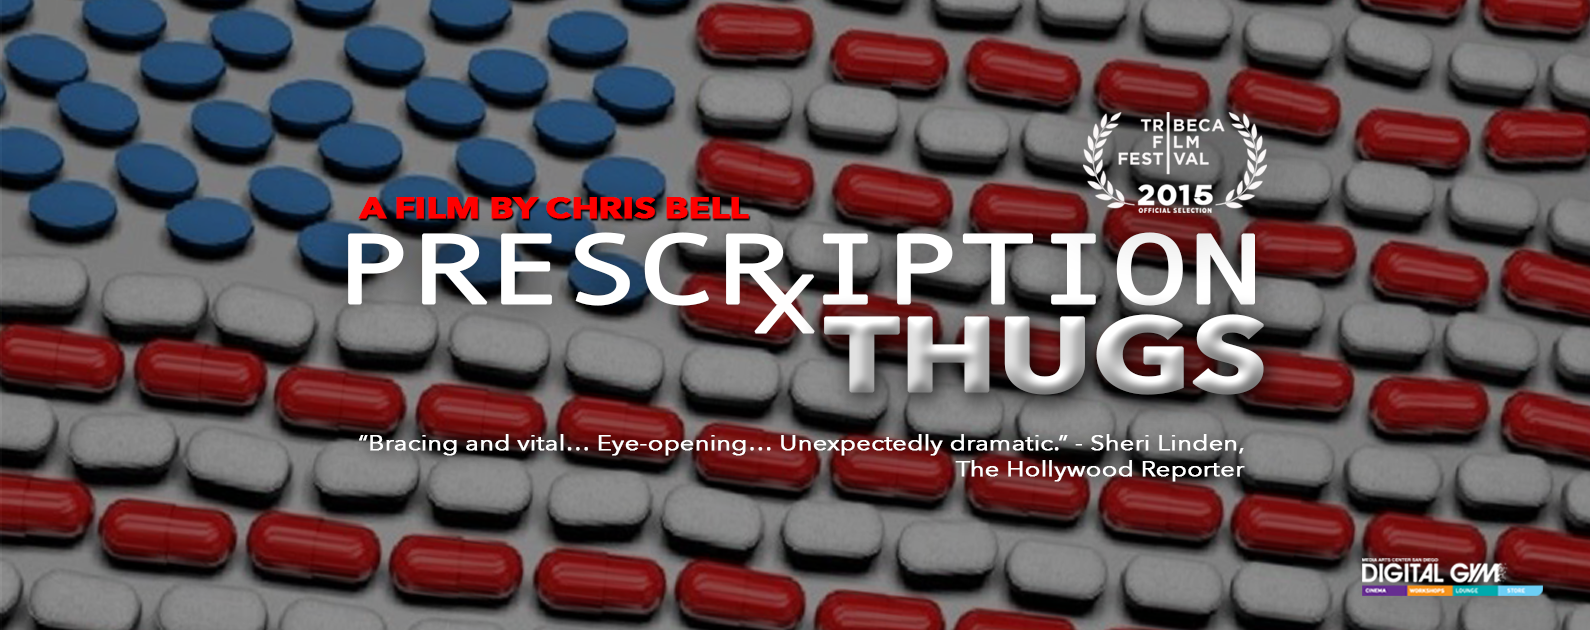 Hard Hitting Documentary, Prescription Thugs, Extended One More Week! (Feb. 5-11)